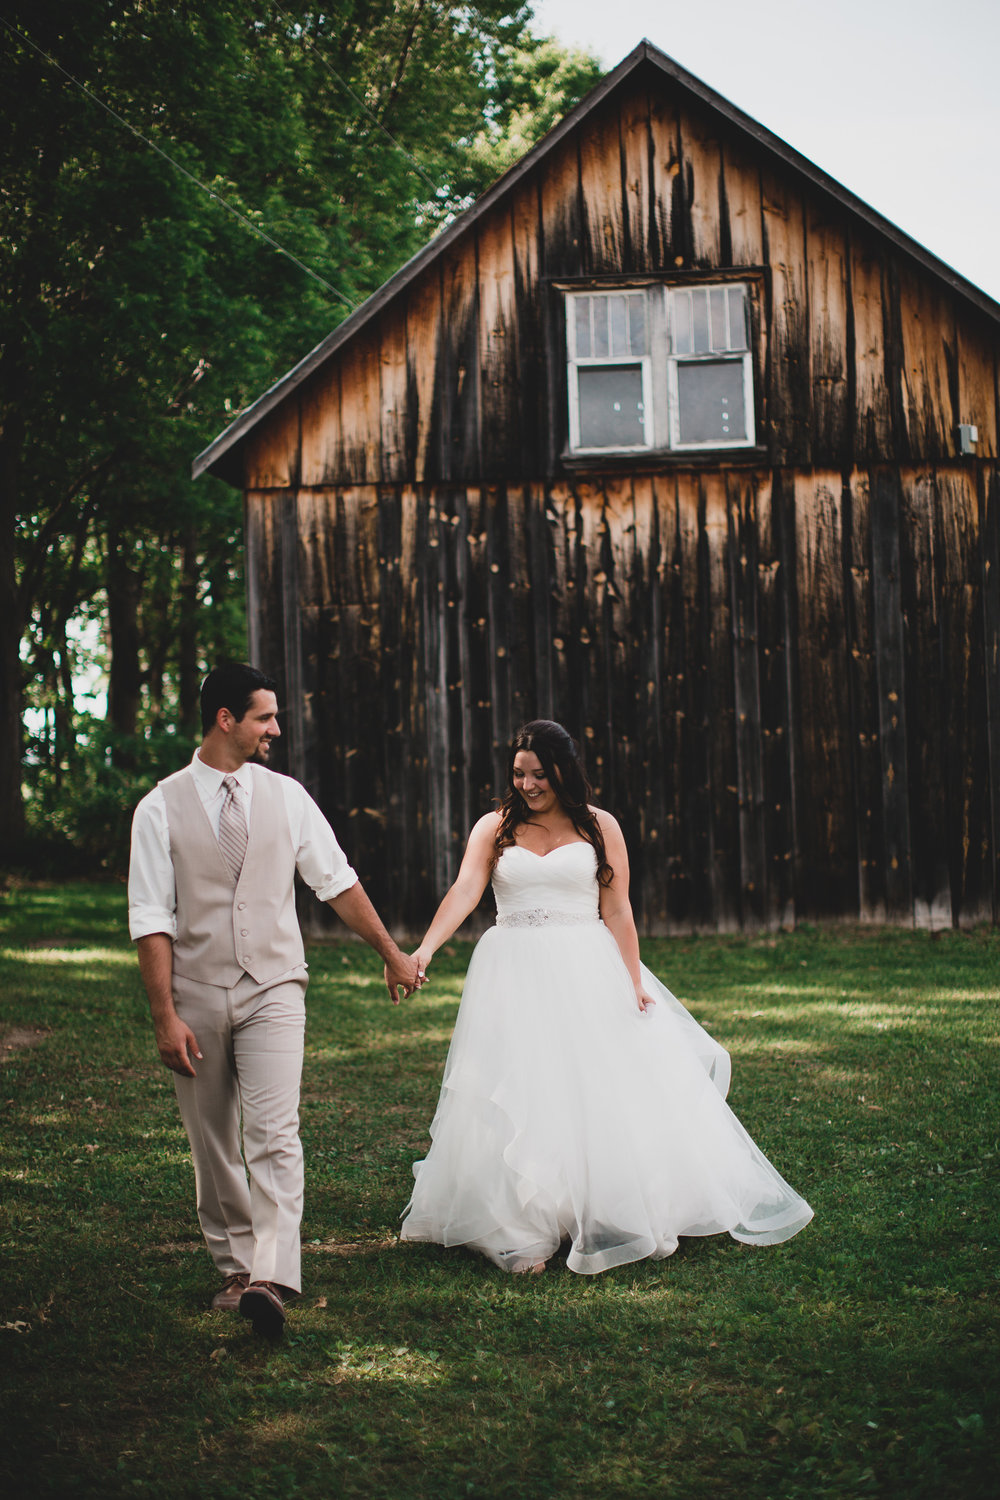 Casual rustic Ottawa wedding venue